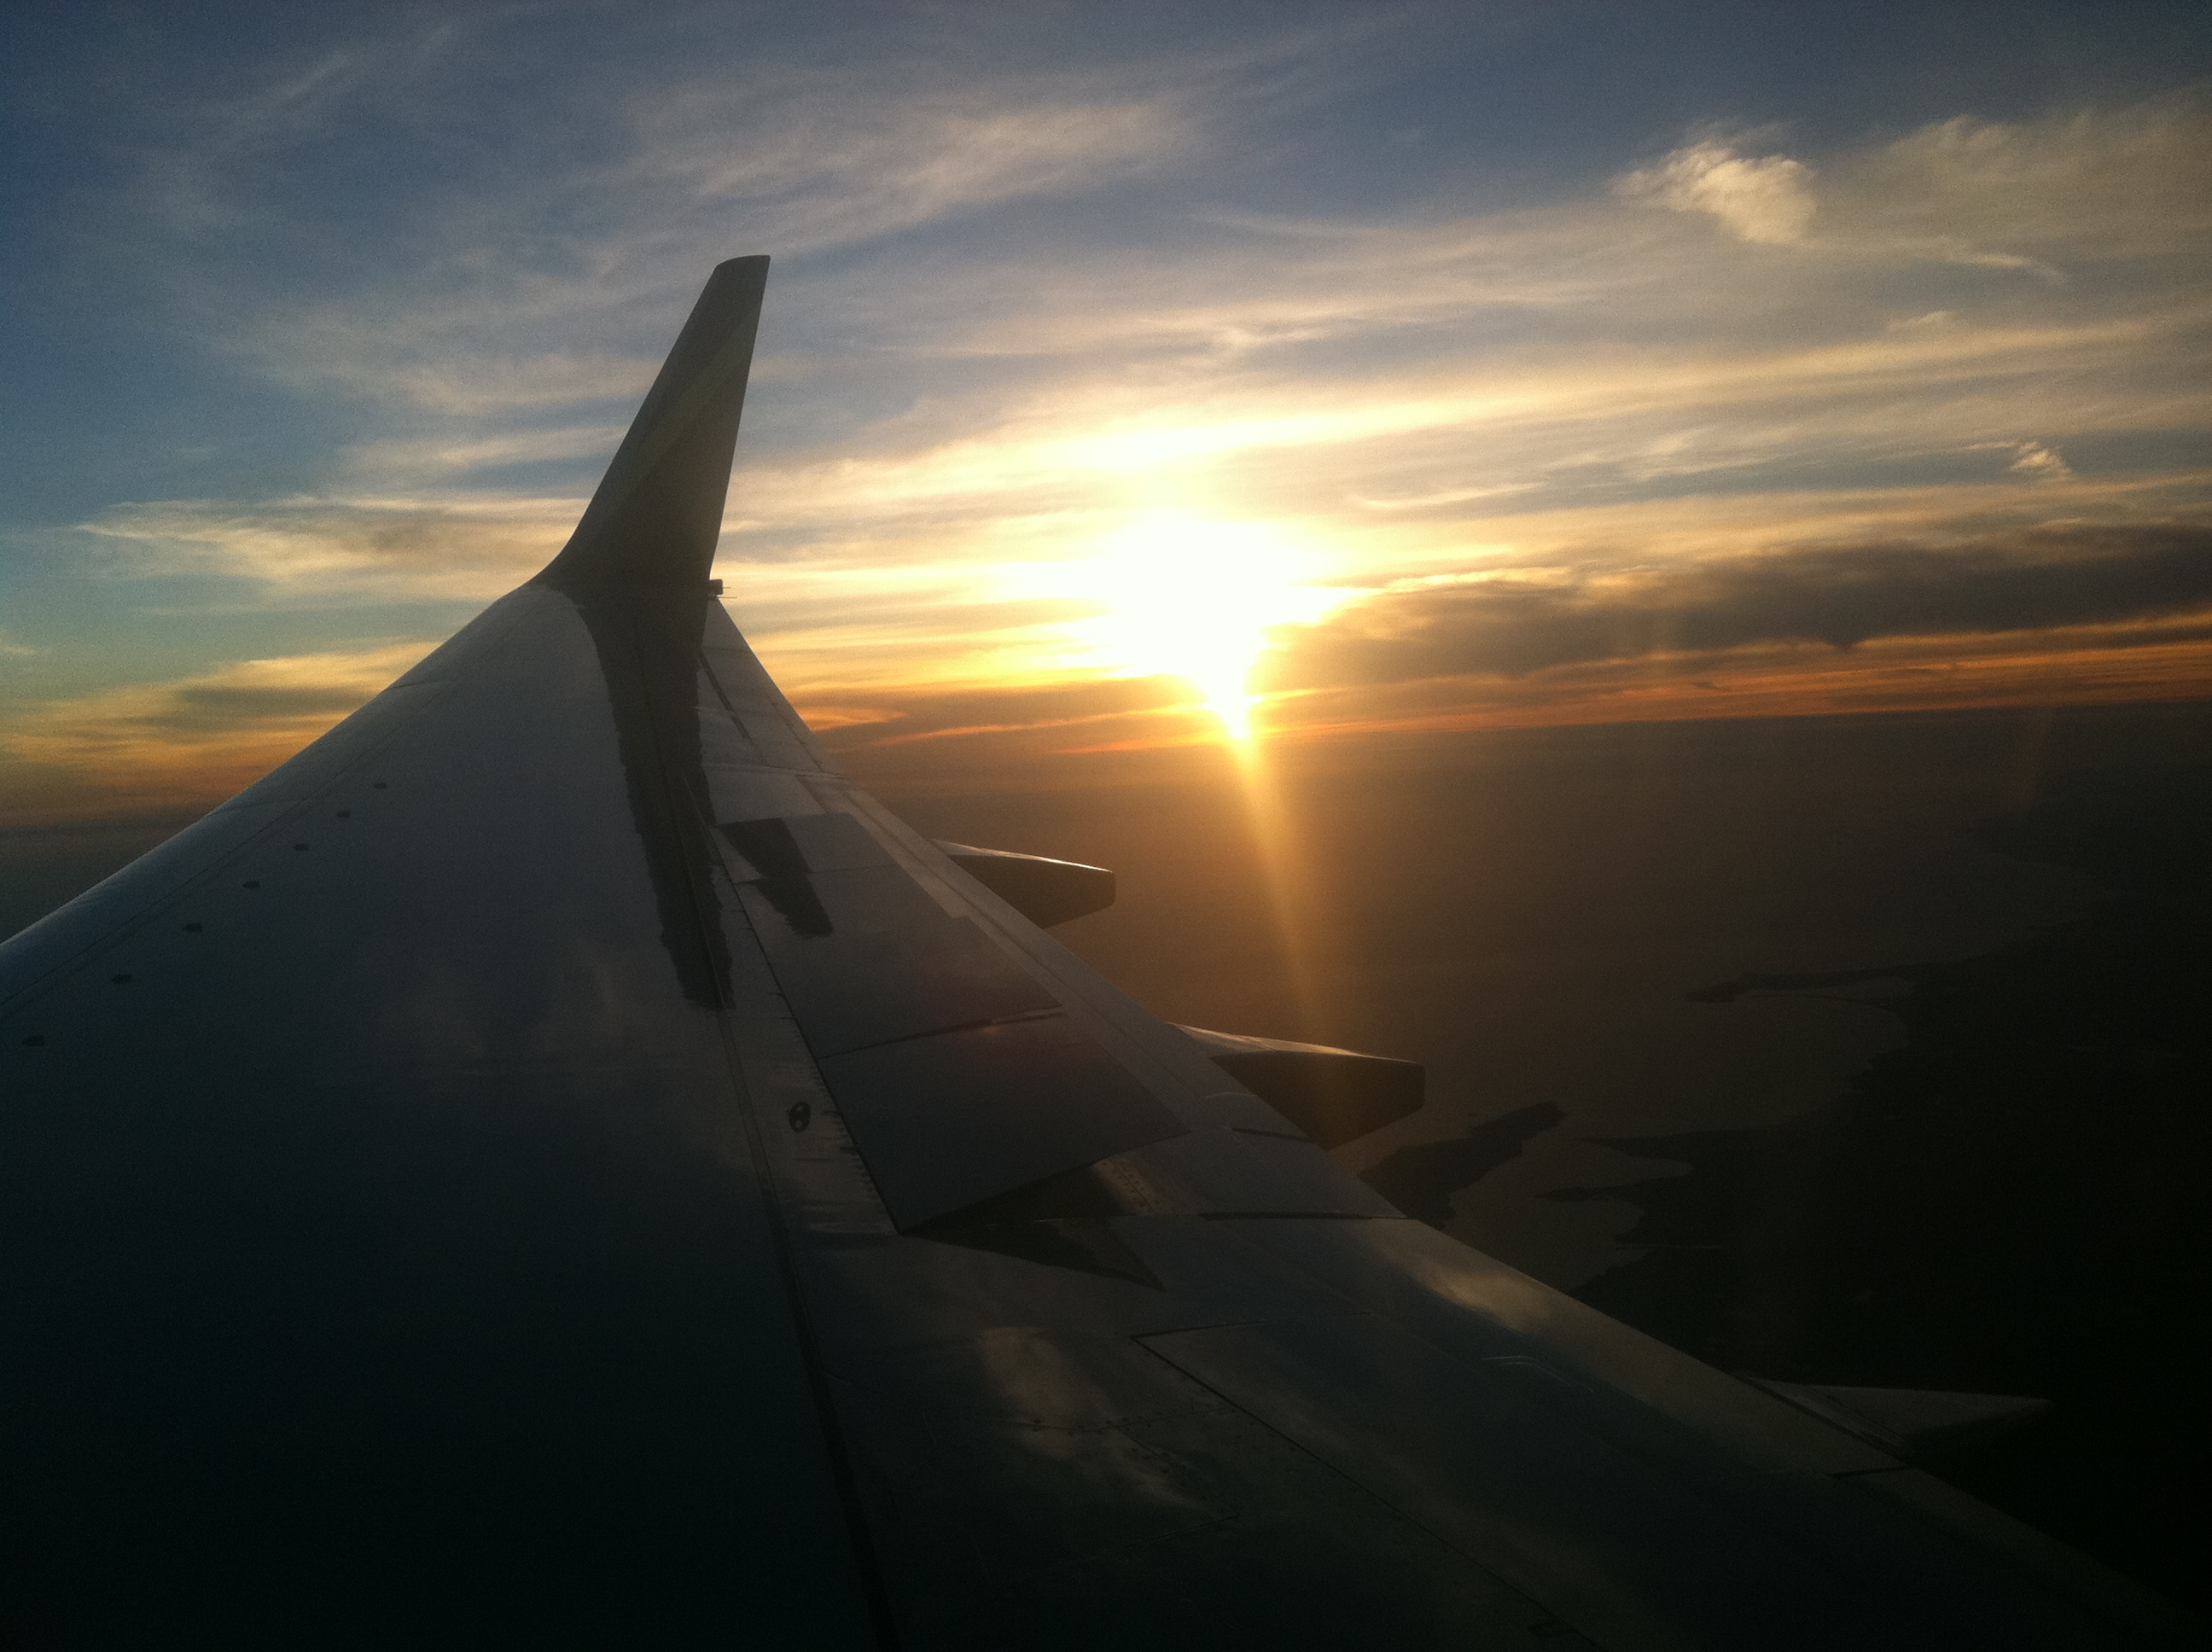 Flying out of the Sunset